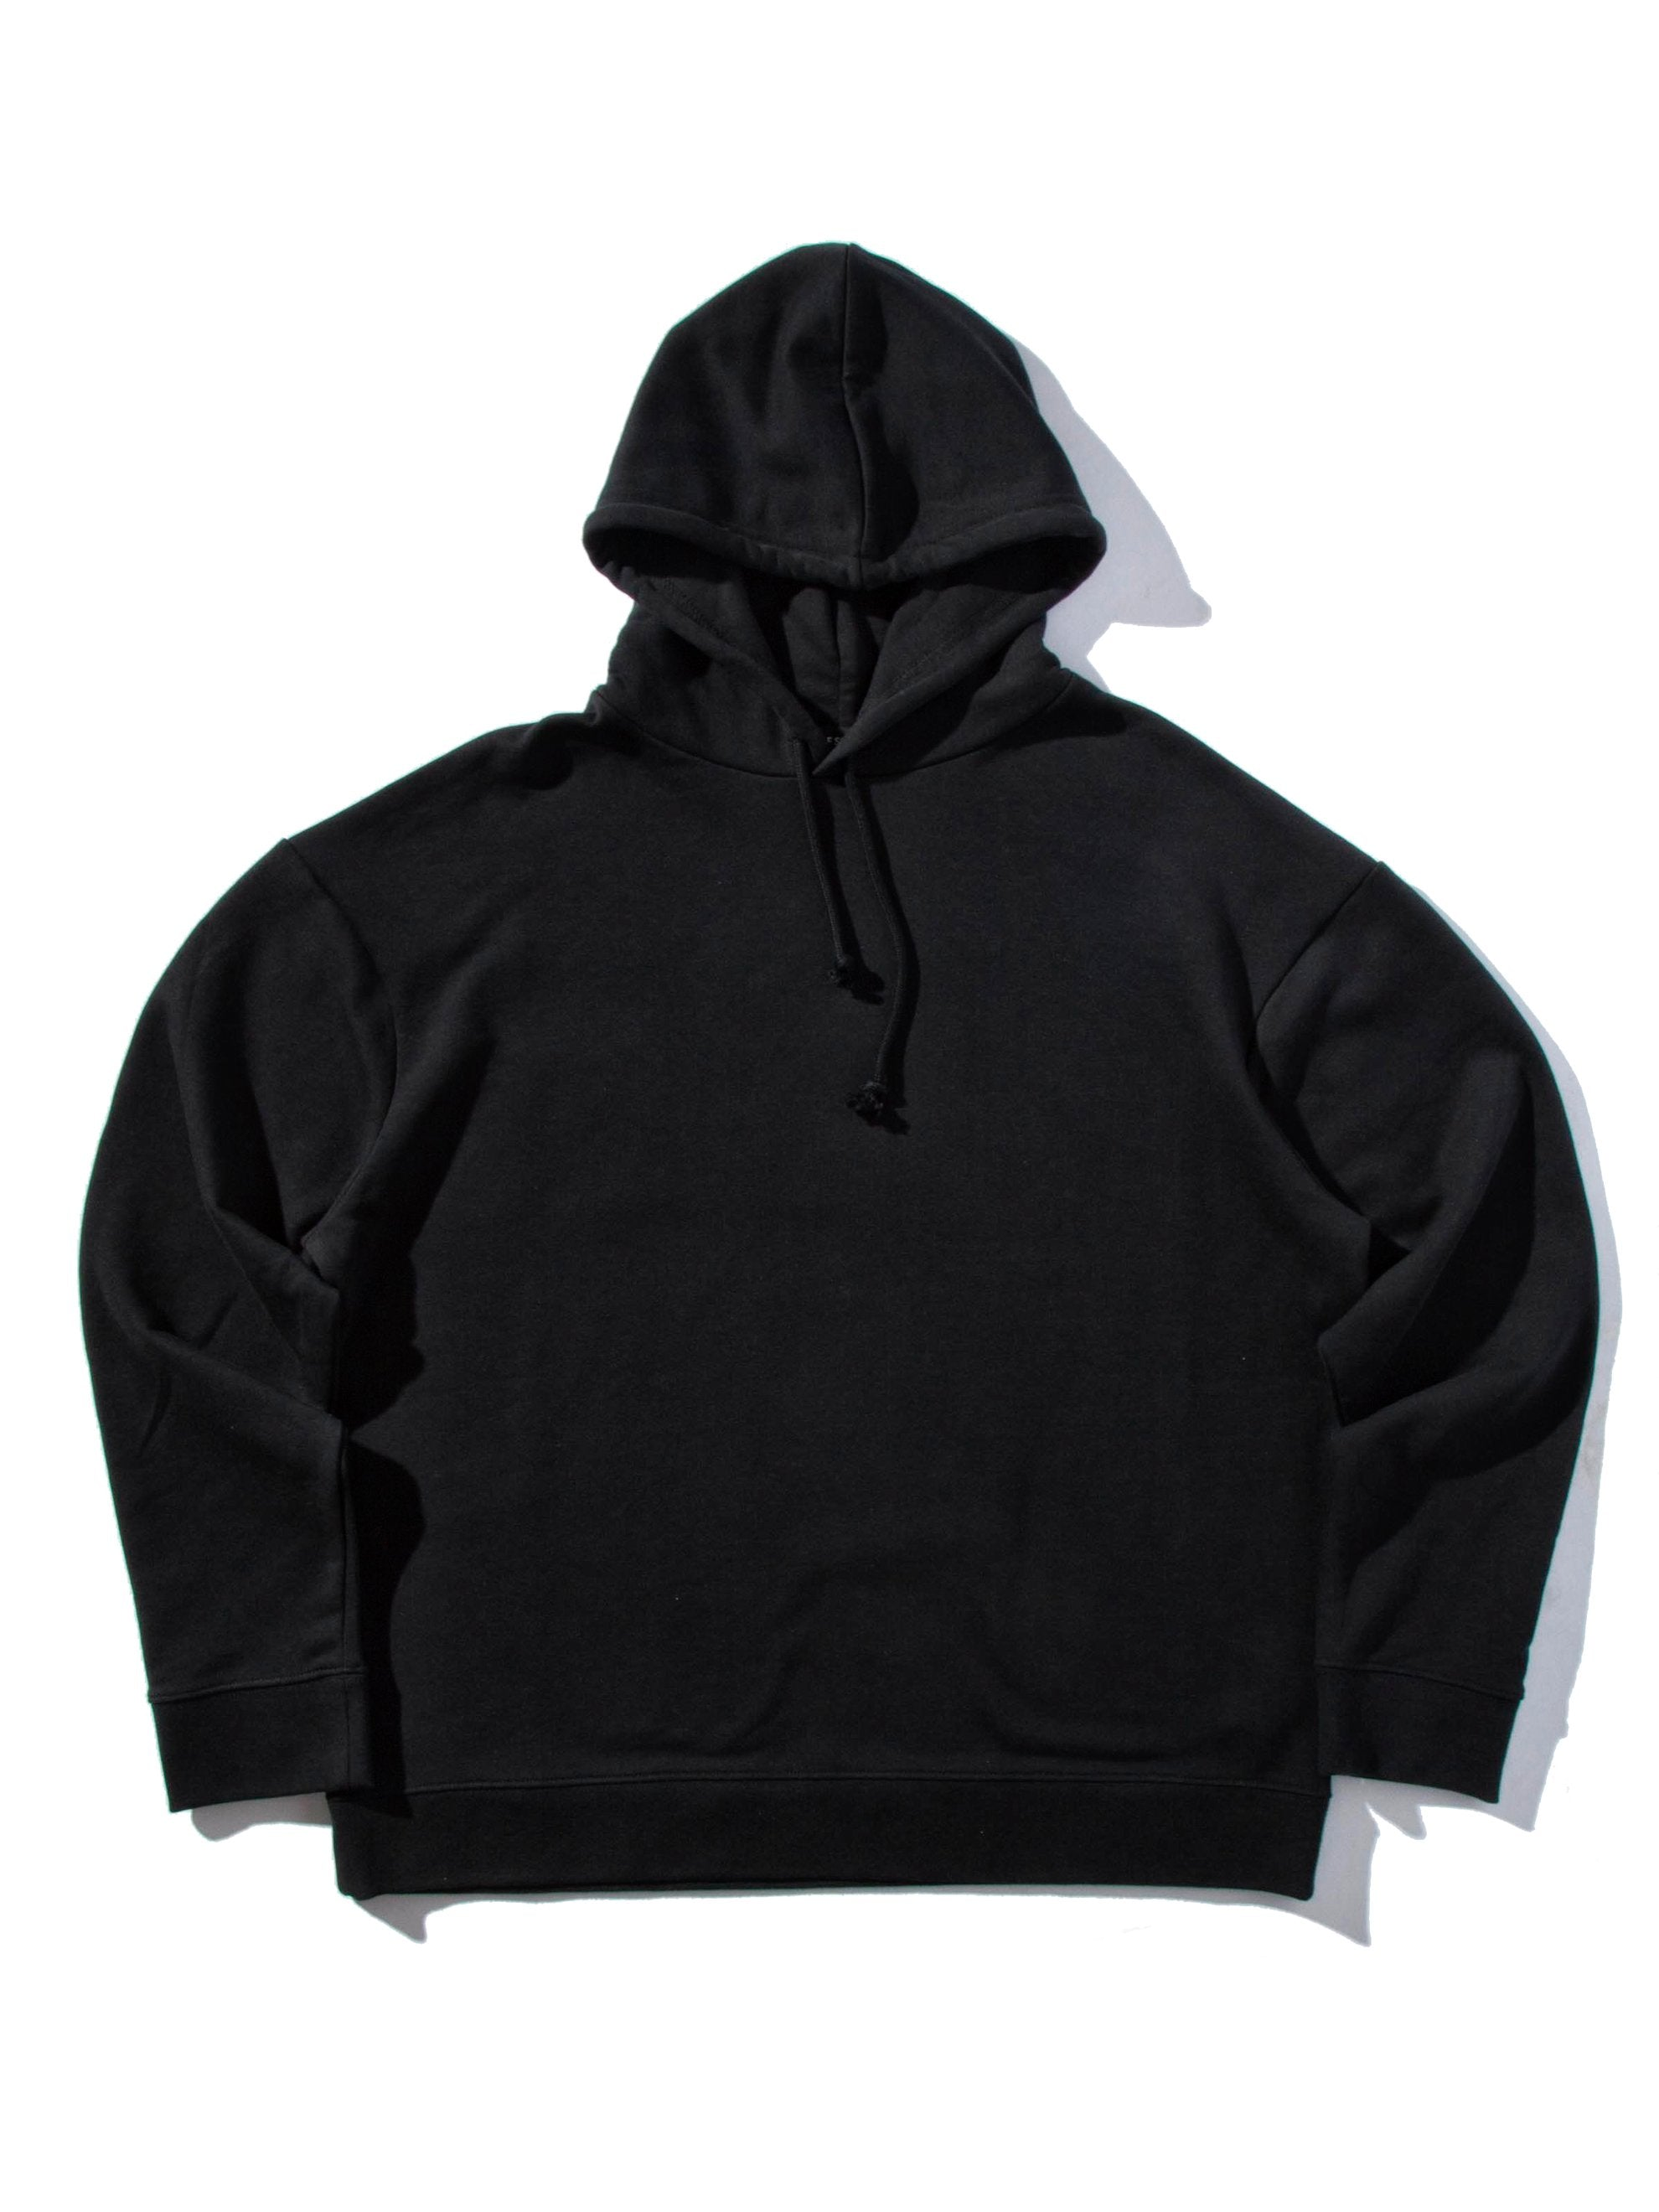 Black Any Way Out Hooded Sweatshirt 8